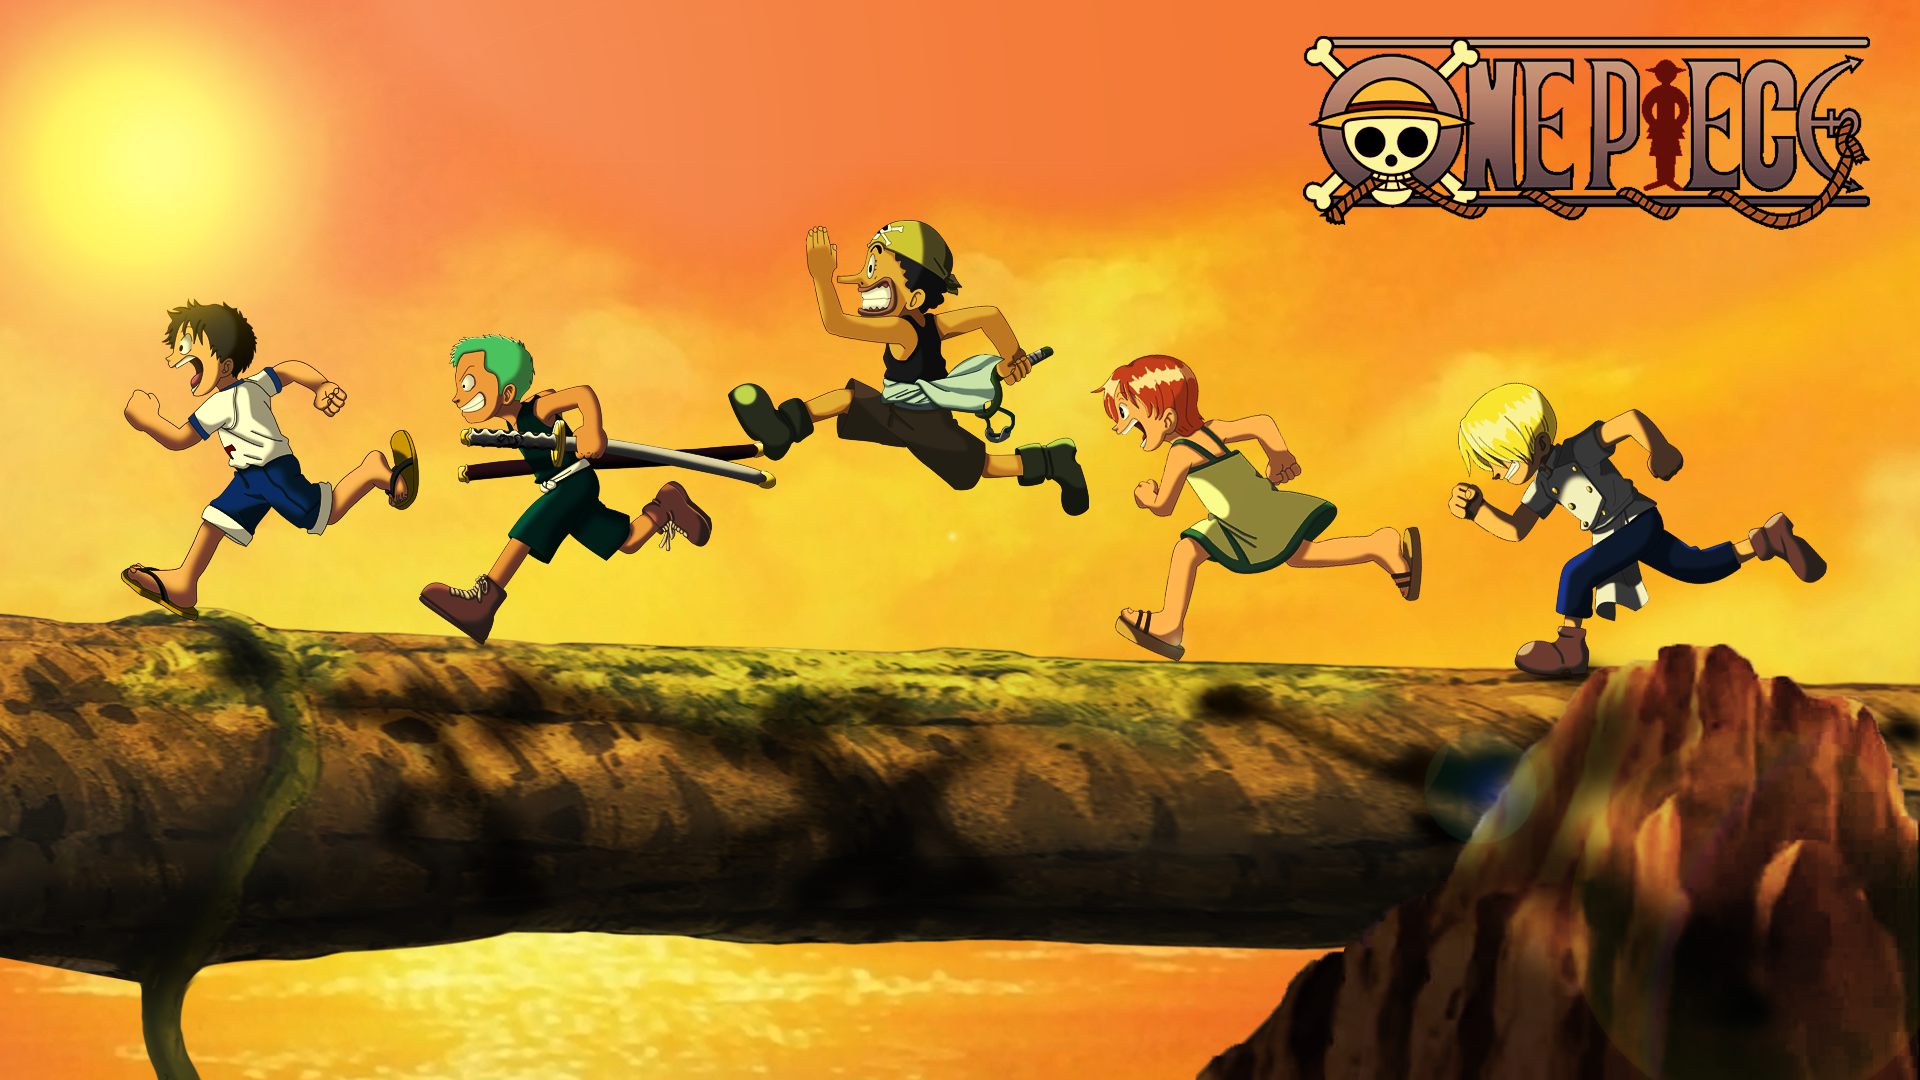 One Piece Children Anime hd wallpapers Background HD Wallpaper 1920x1080